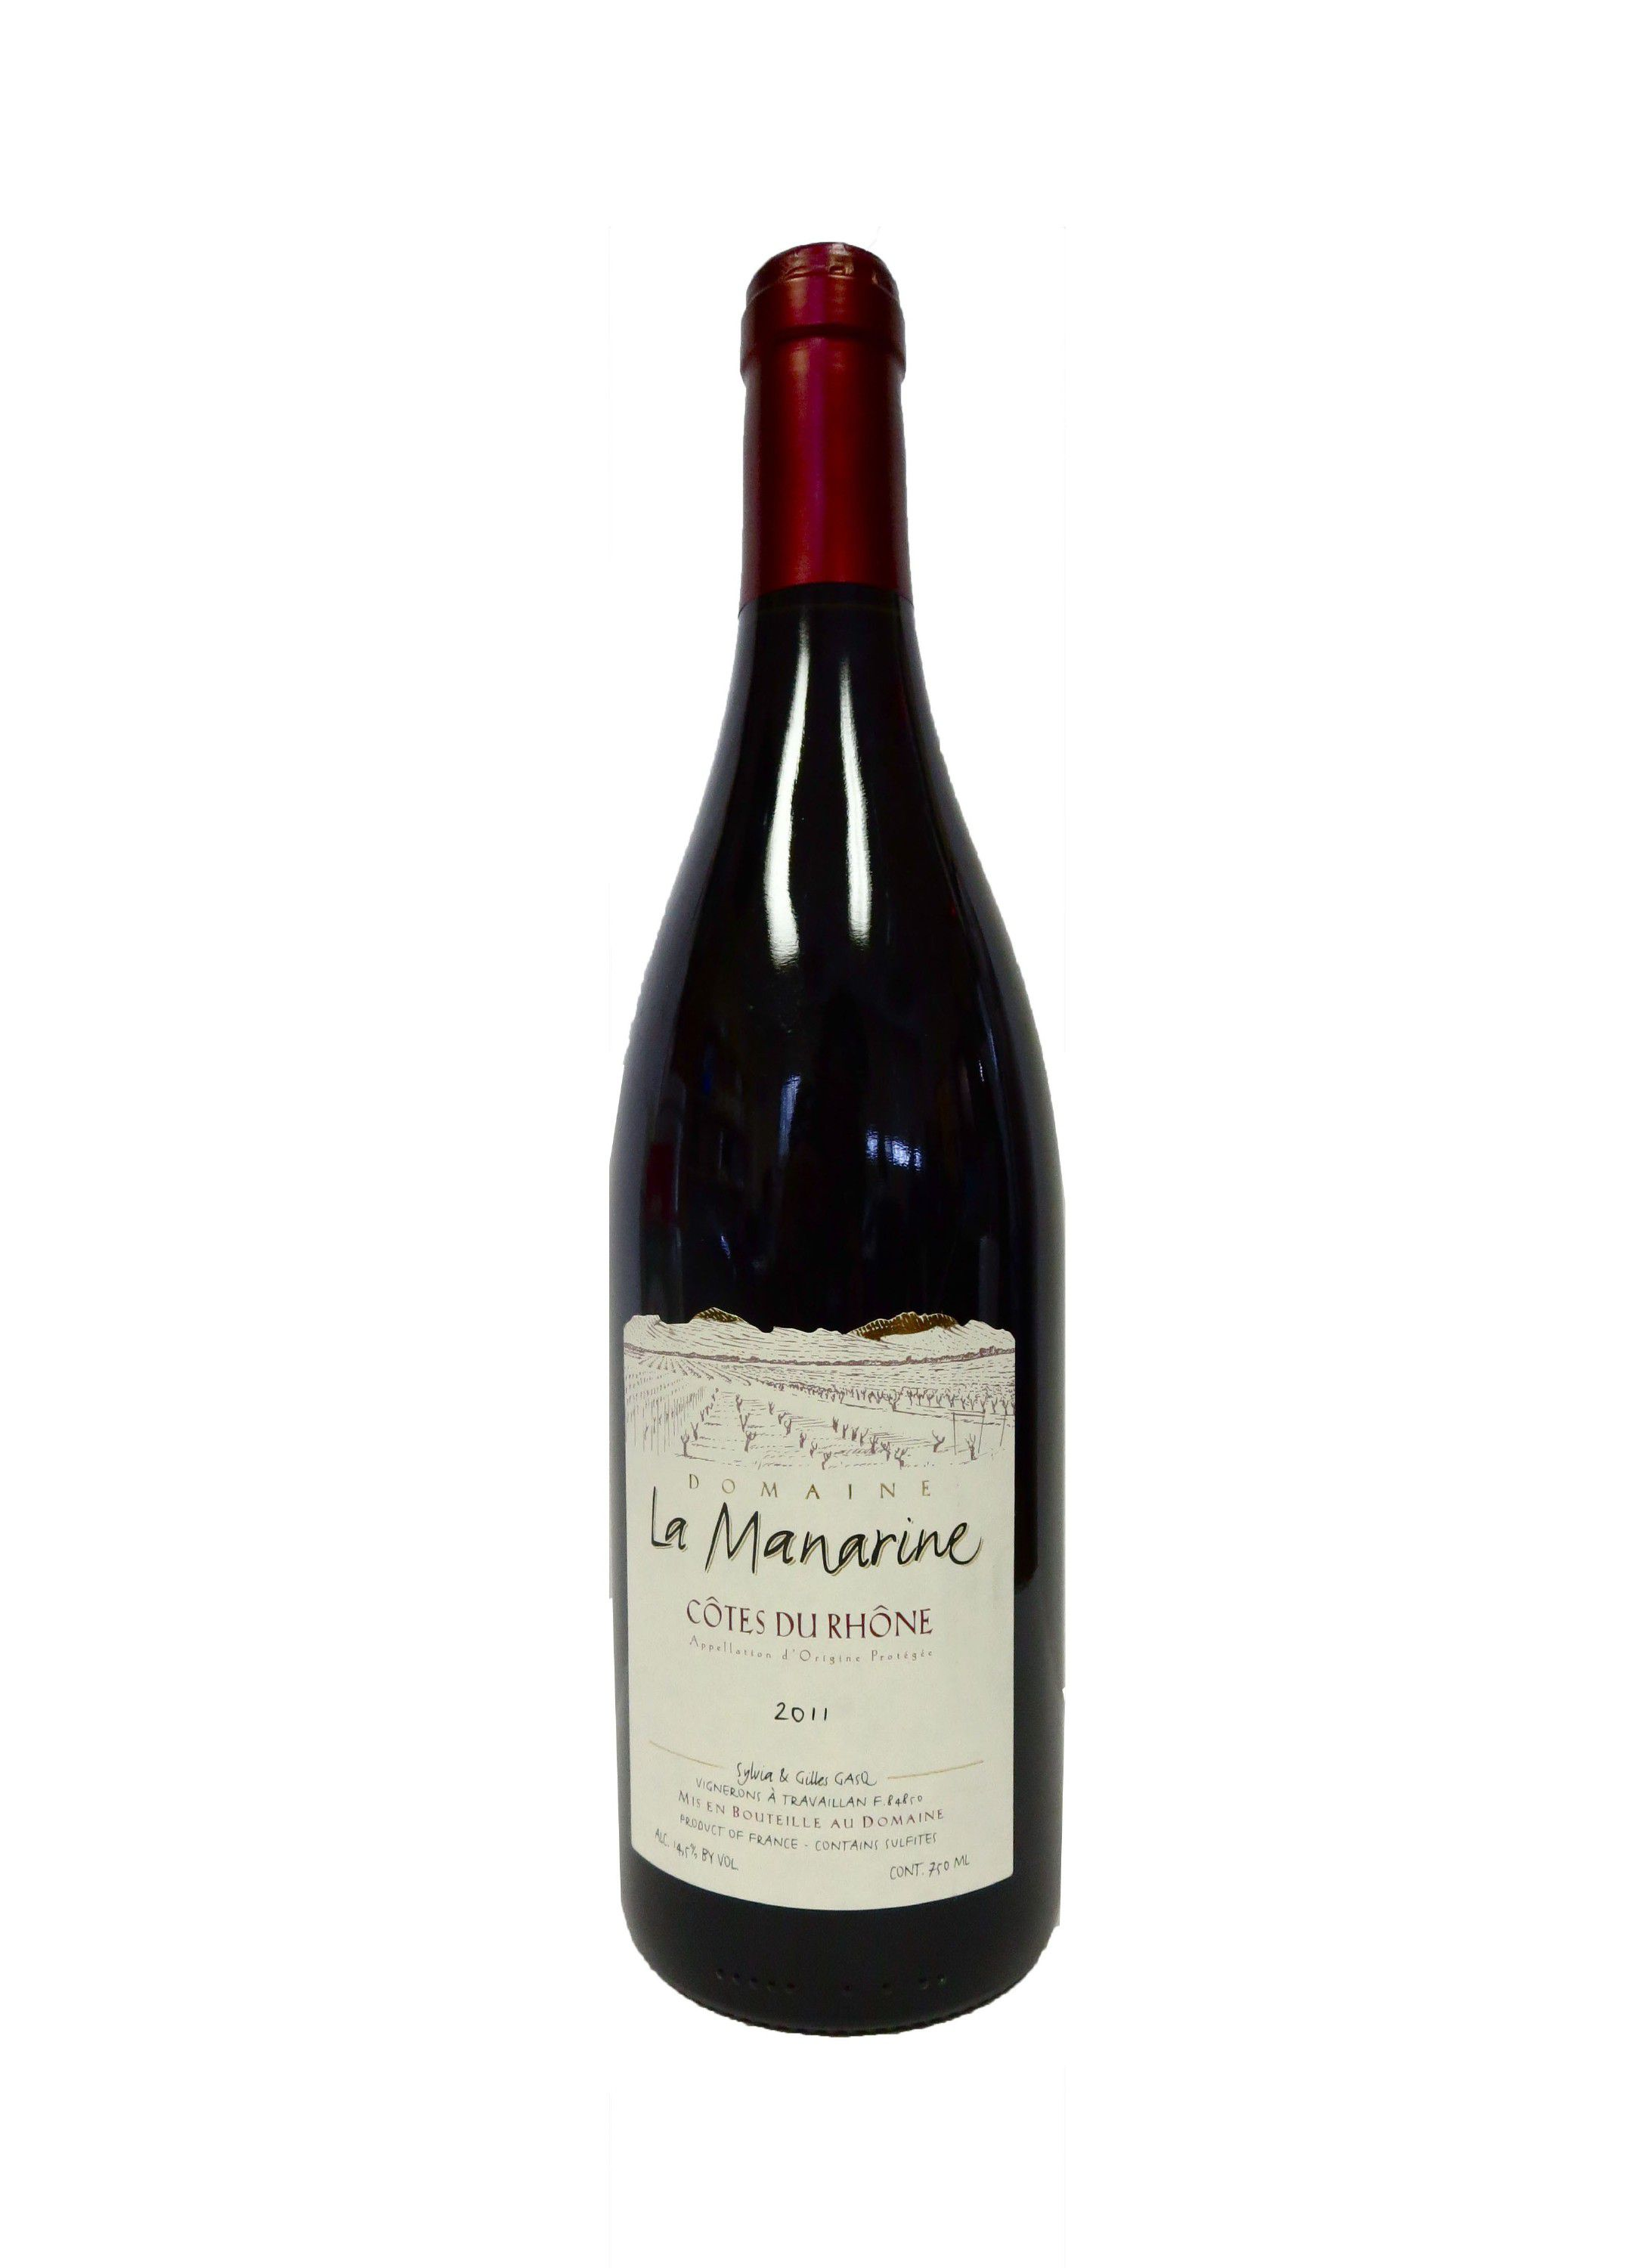 The Pour Man: La Manarine is French red wine done right